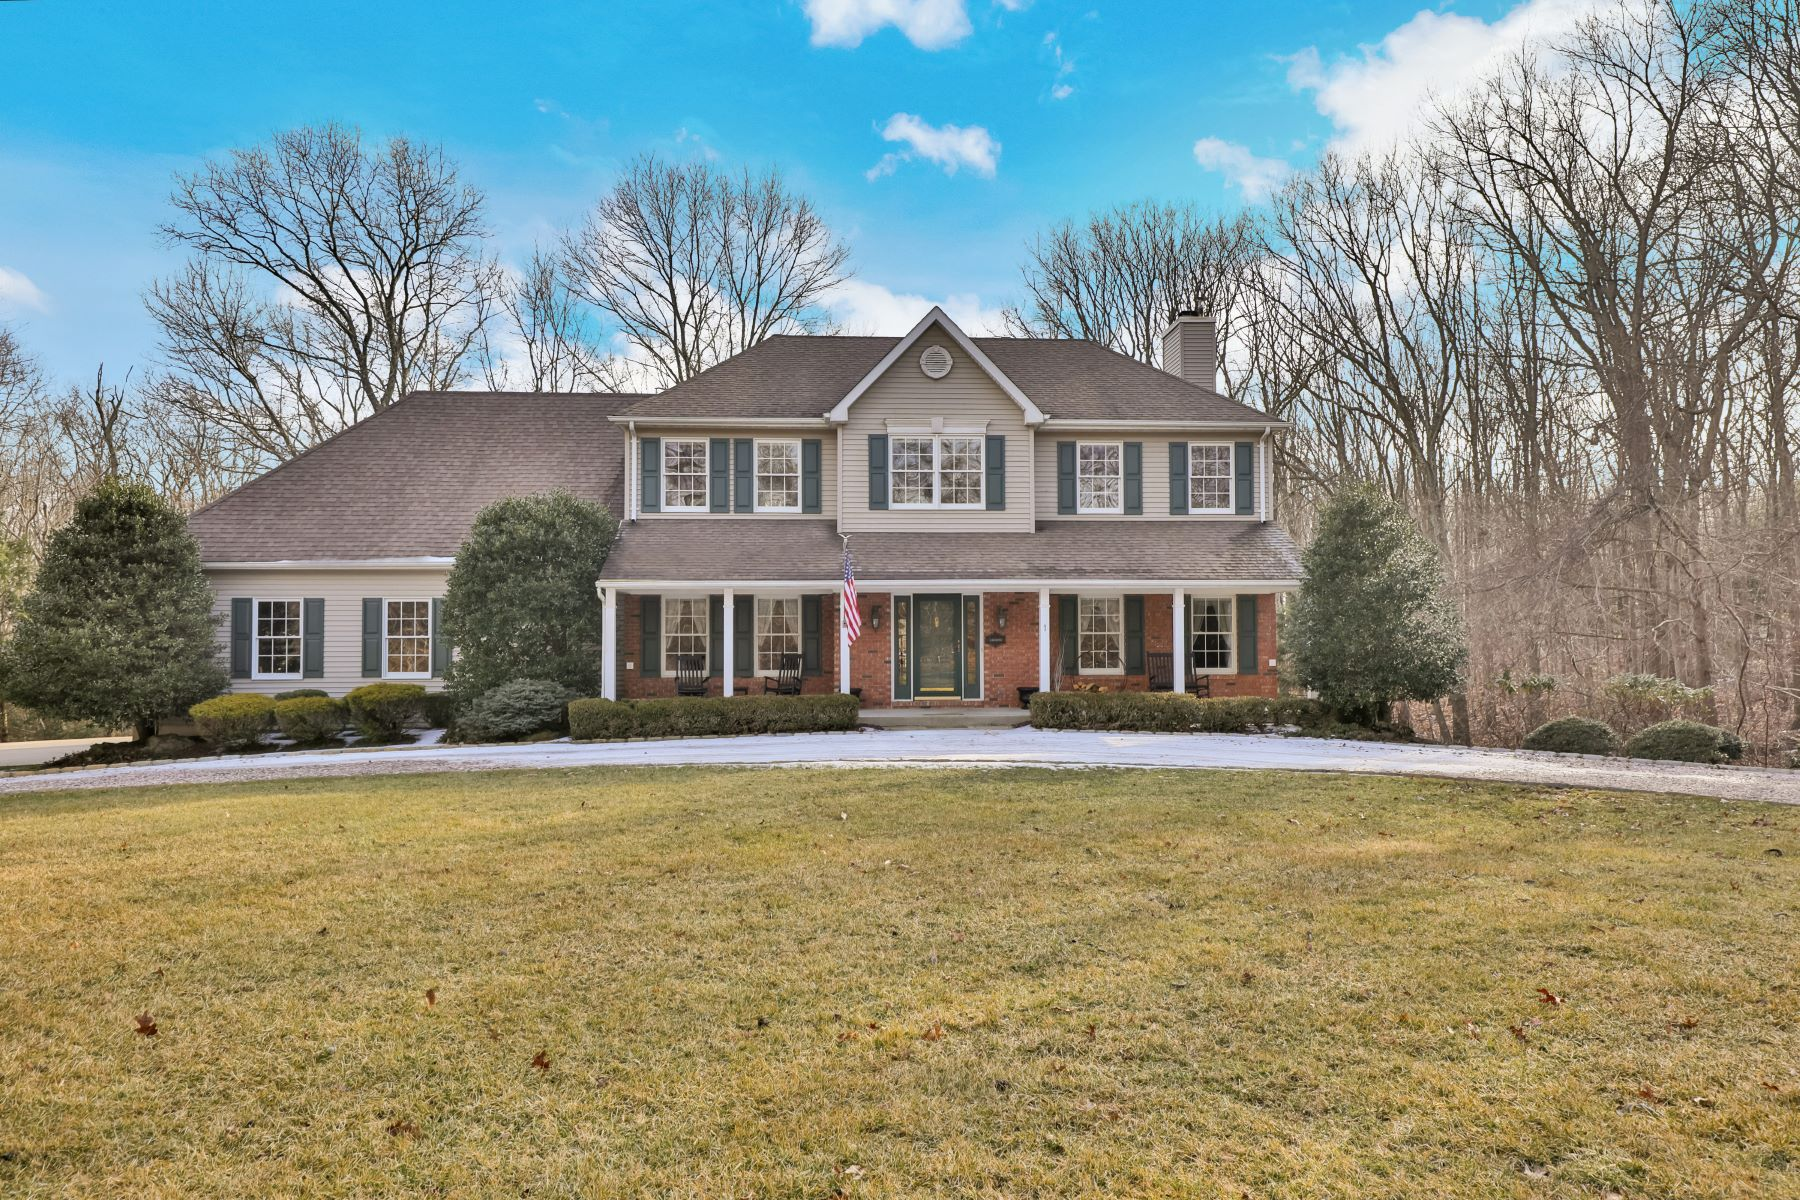 Single Family Home for Sale at Welcome To Stillhouse Meadows In The Heart Of Millstone Township 1 Scotto Drive, Millstone Township, New Jersey 08510 United States